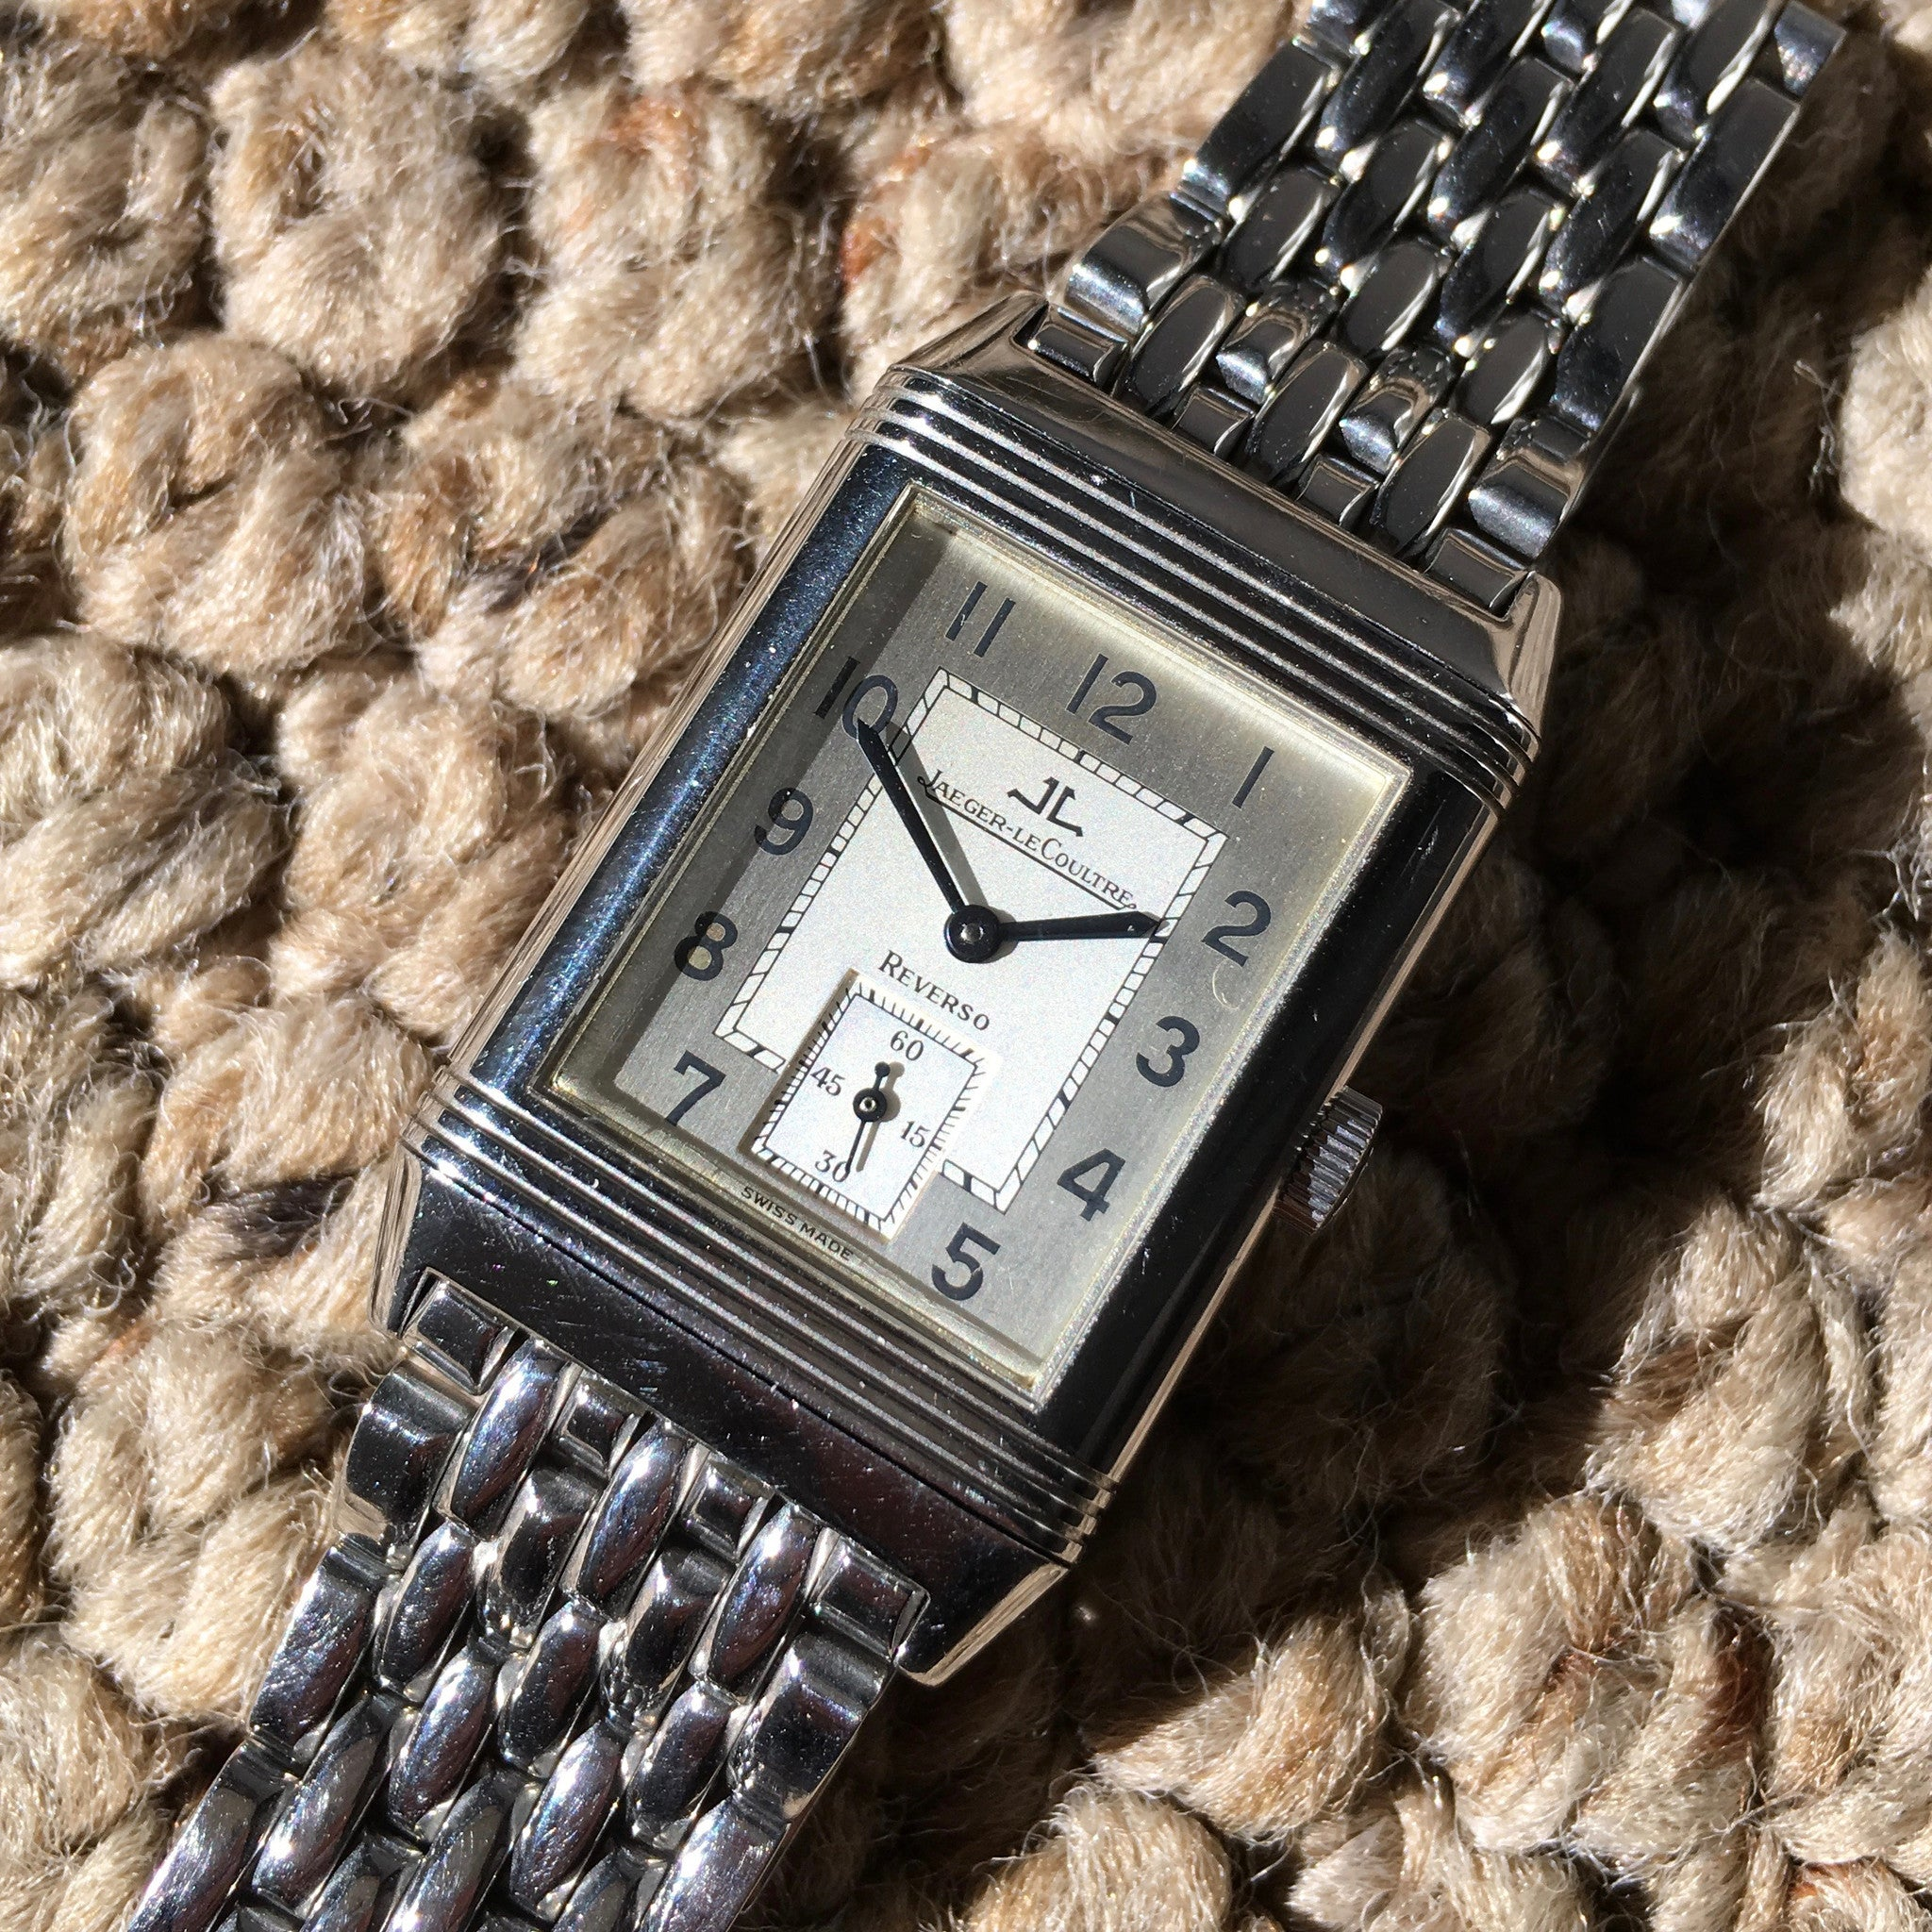 Jaeger LeCoultre Reverso Grande Taille 270.8.62 Steel Manual Wind Wristwatch - Hashtag Watch Company